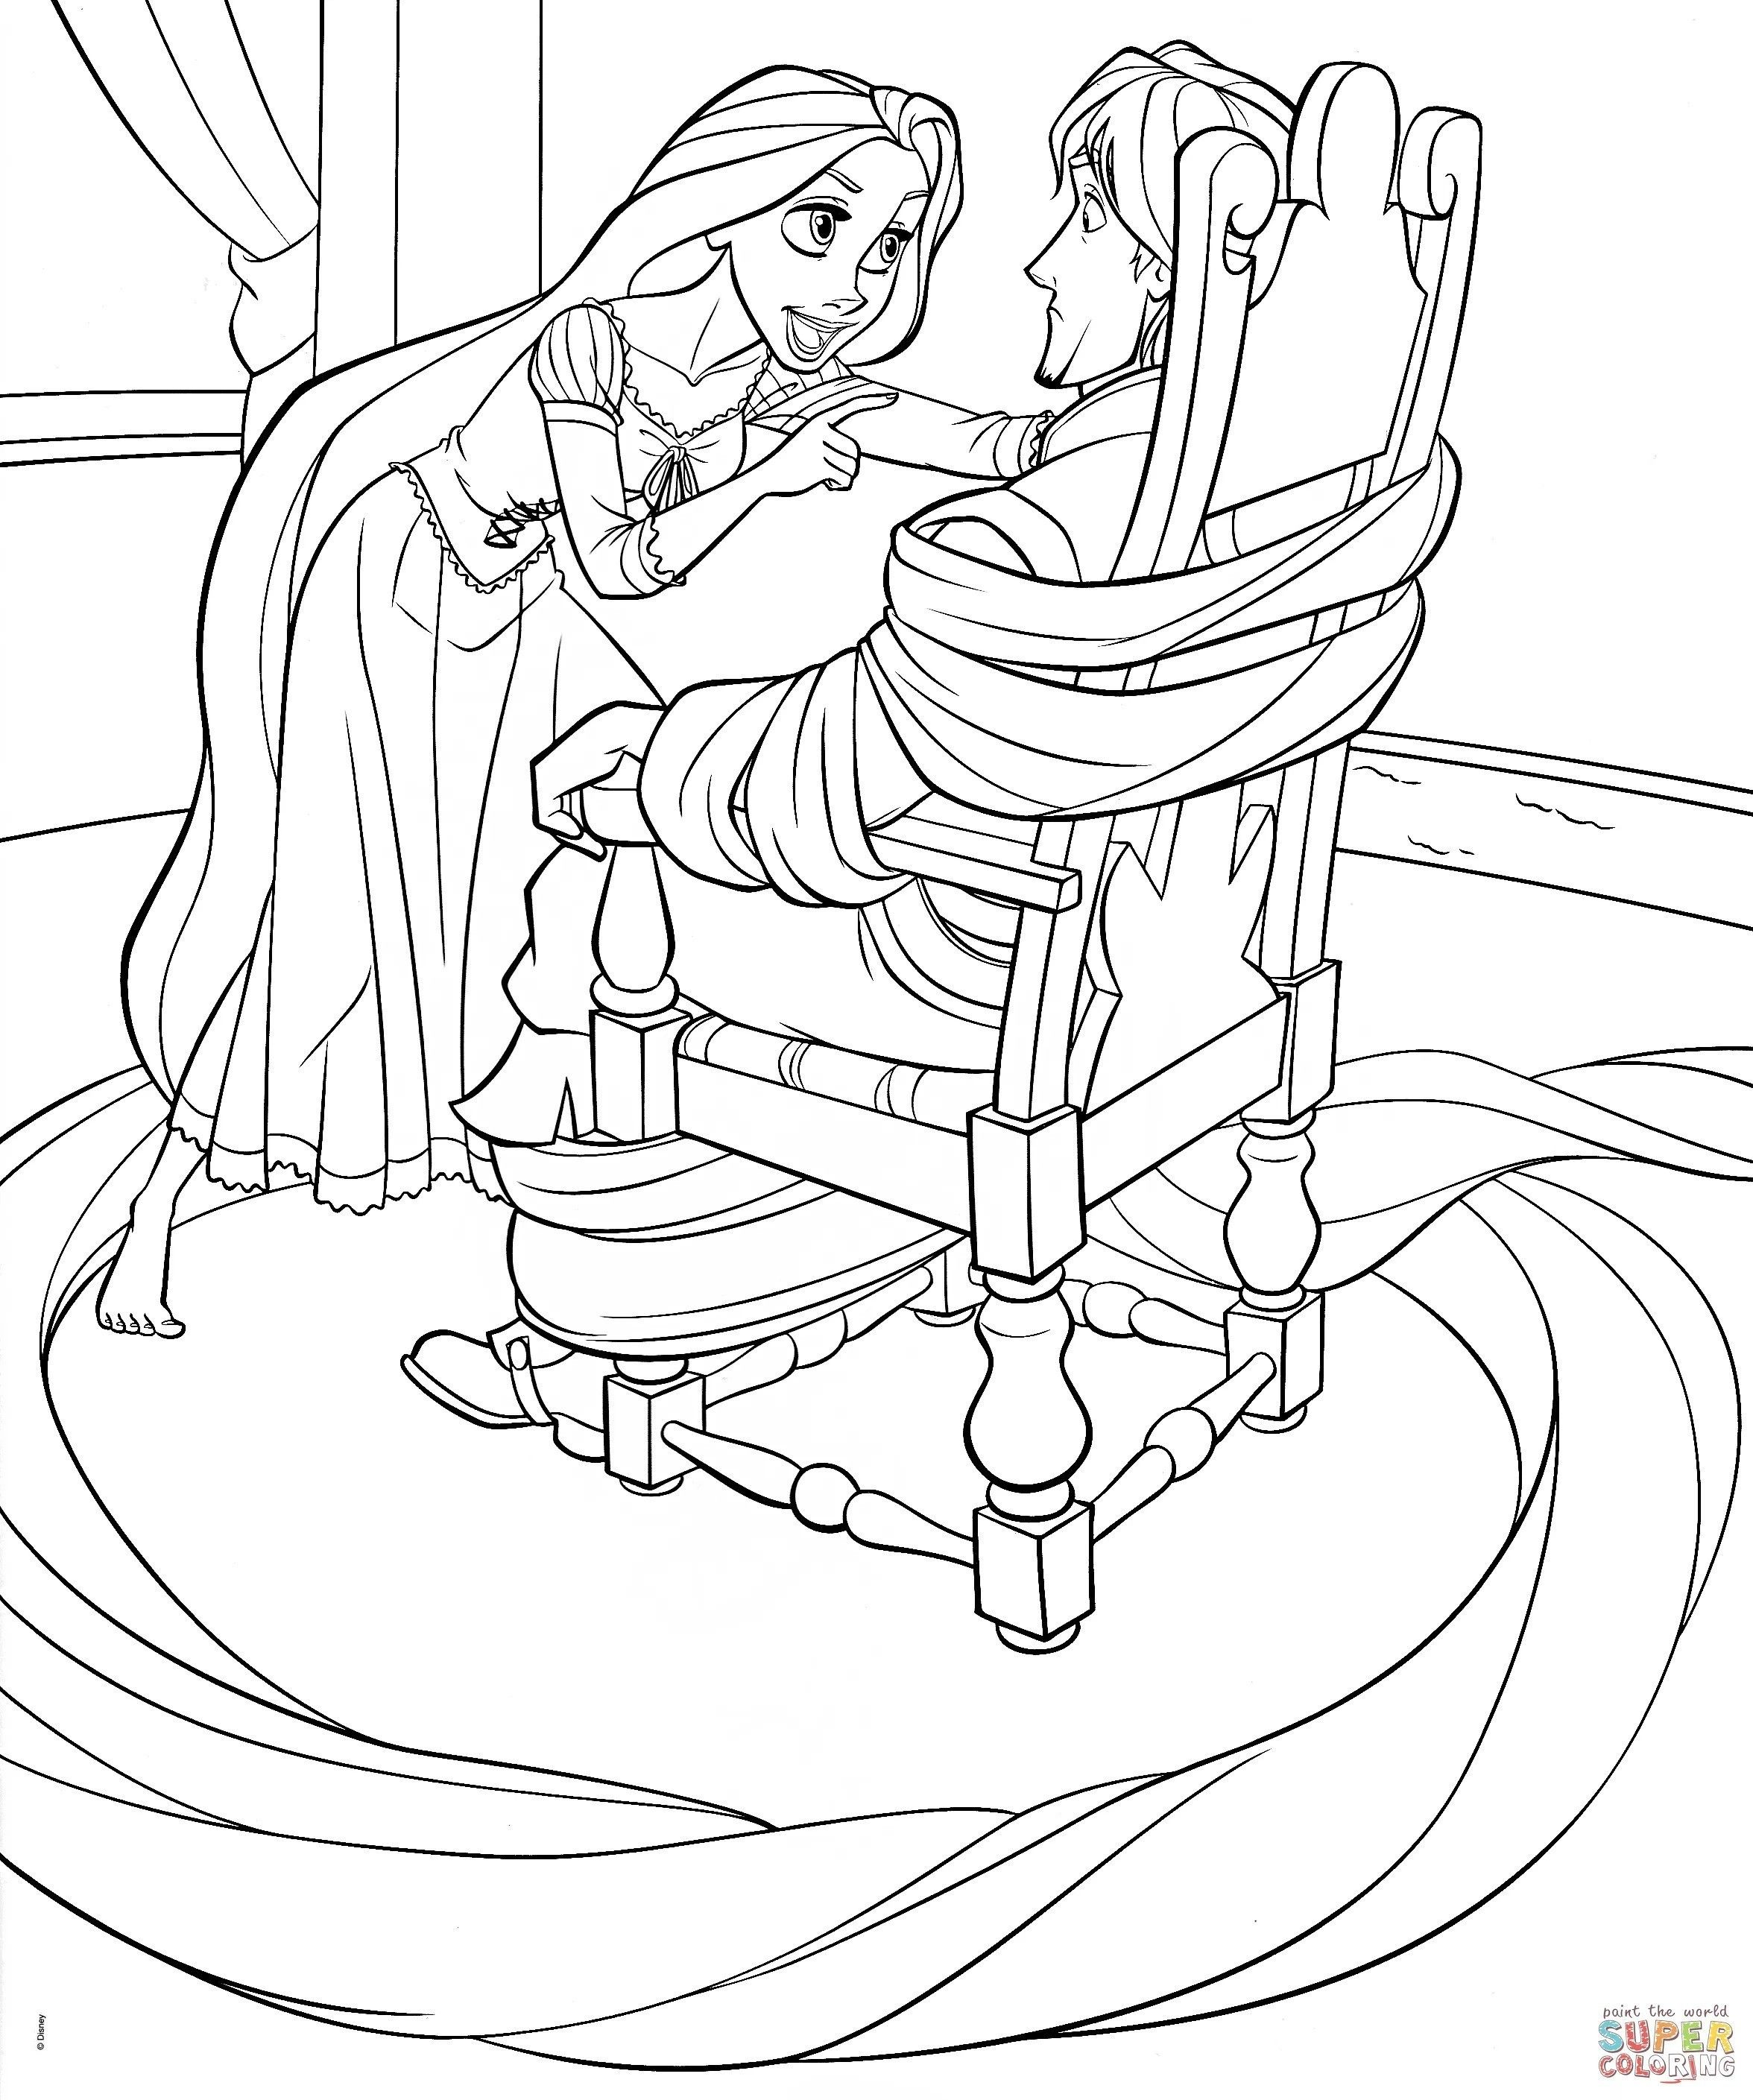 Disney Princess Coloring Pages Rapunzel And Flynn From The Thousand Photos Online Regardi Disney Coloring Pages Tangled Coloring Pages Disney Princess Colors